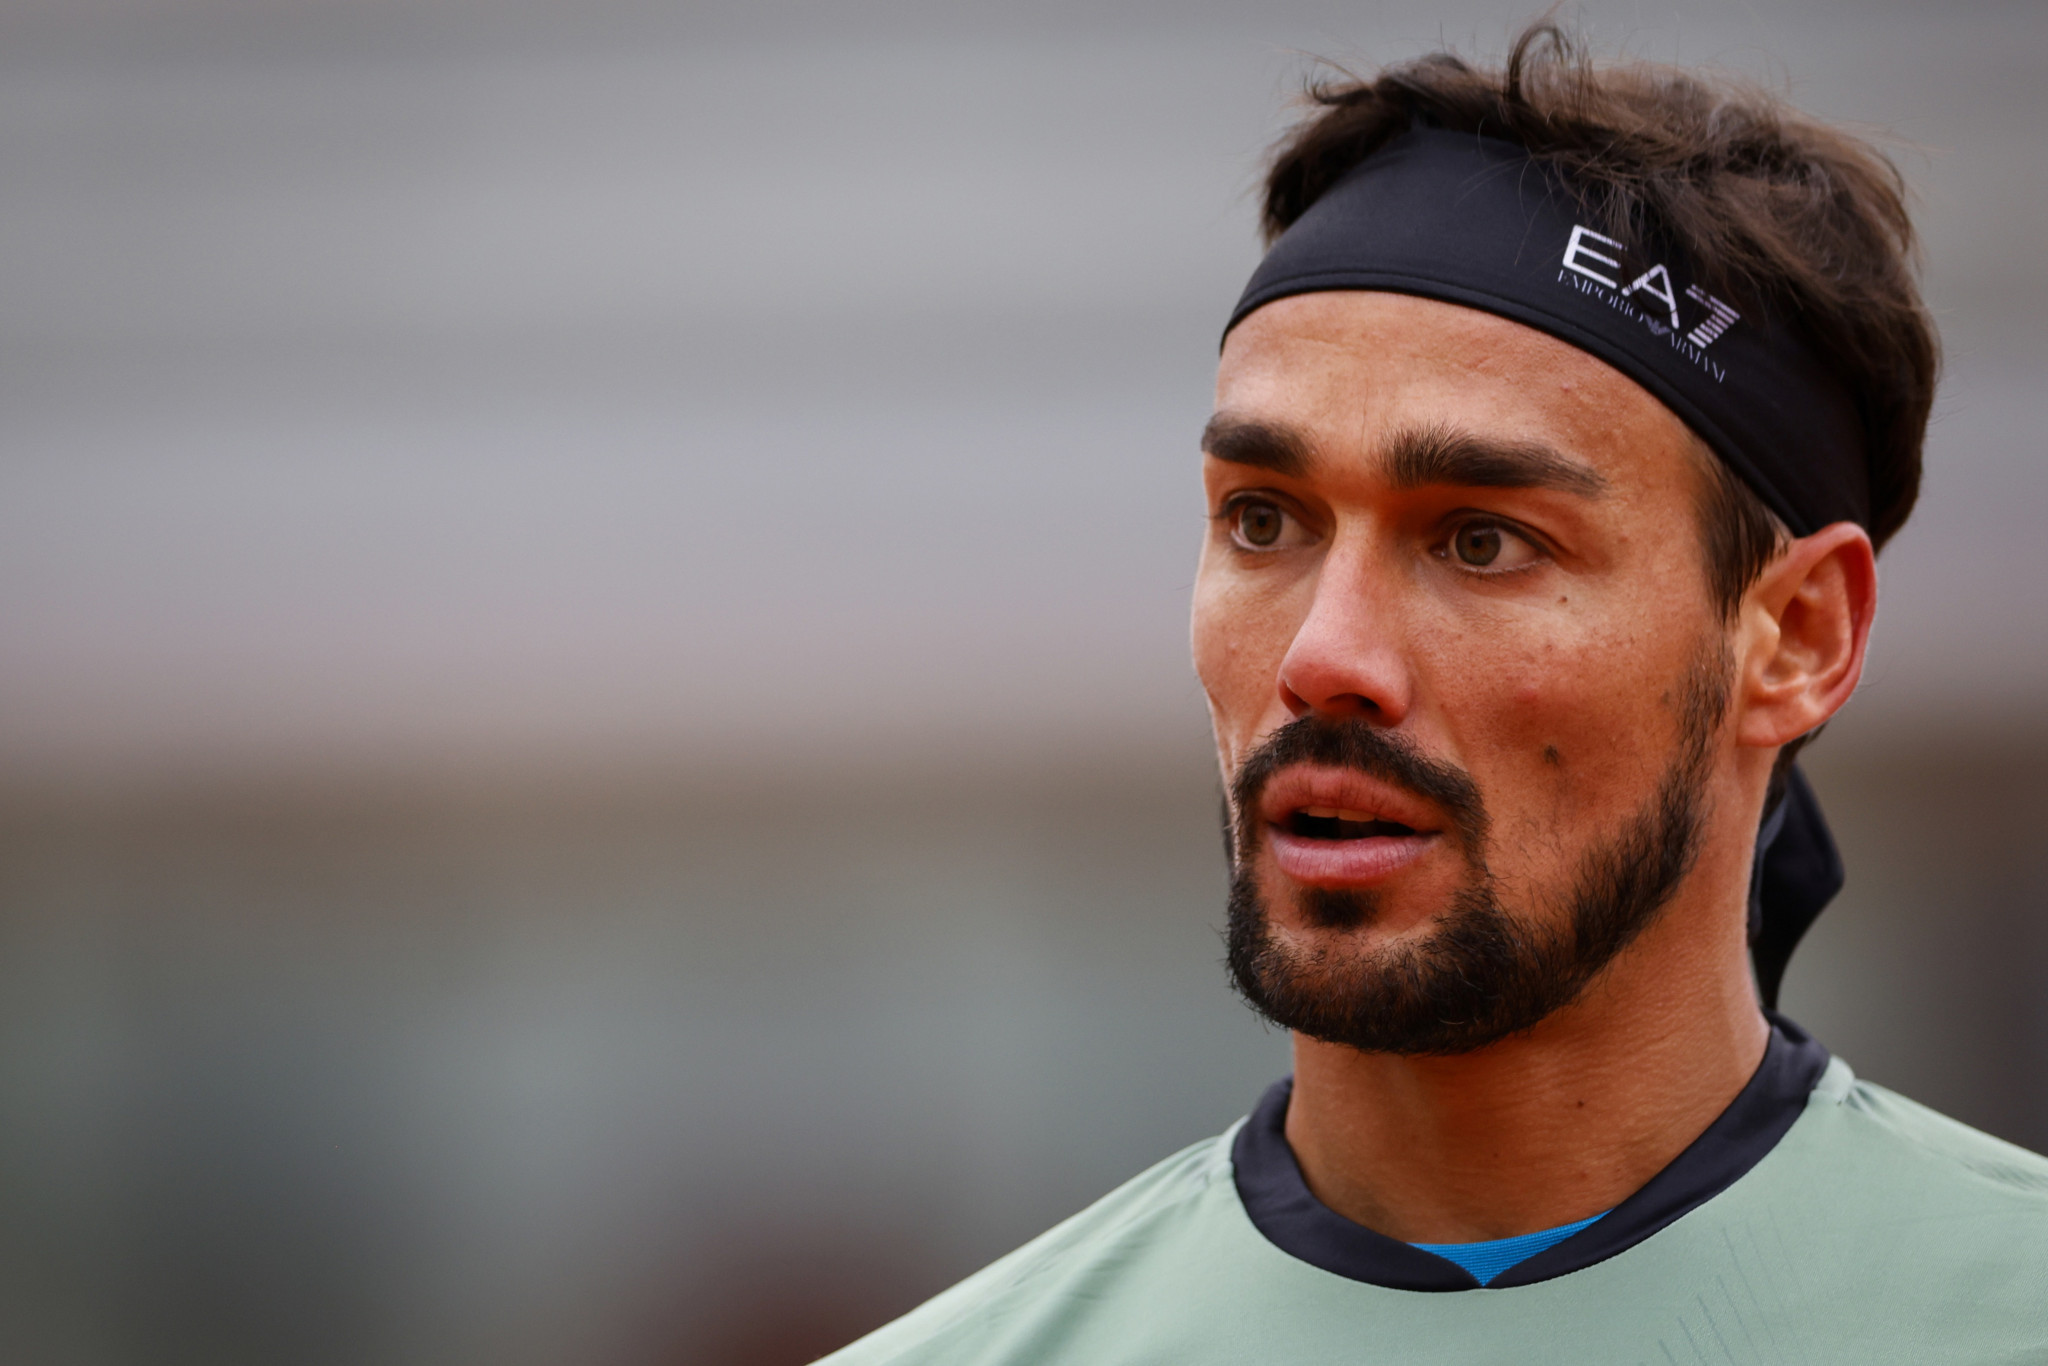 Italy's 15th seed Fabio Fognini continued his poor form since the tennis restart with a defeat to unseeded Kazakh Mikhail Kukushkin ©Getty Images